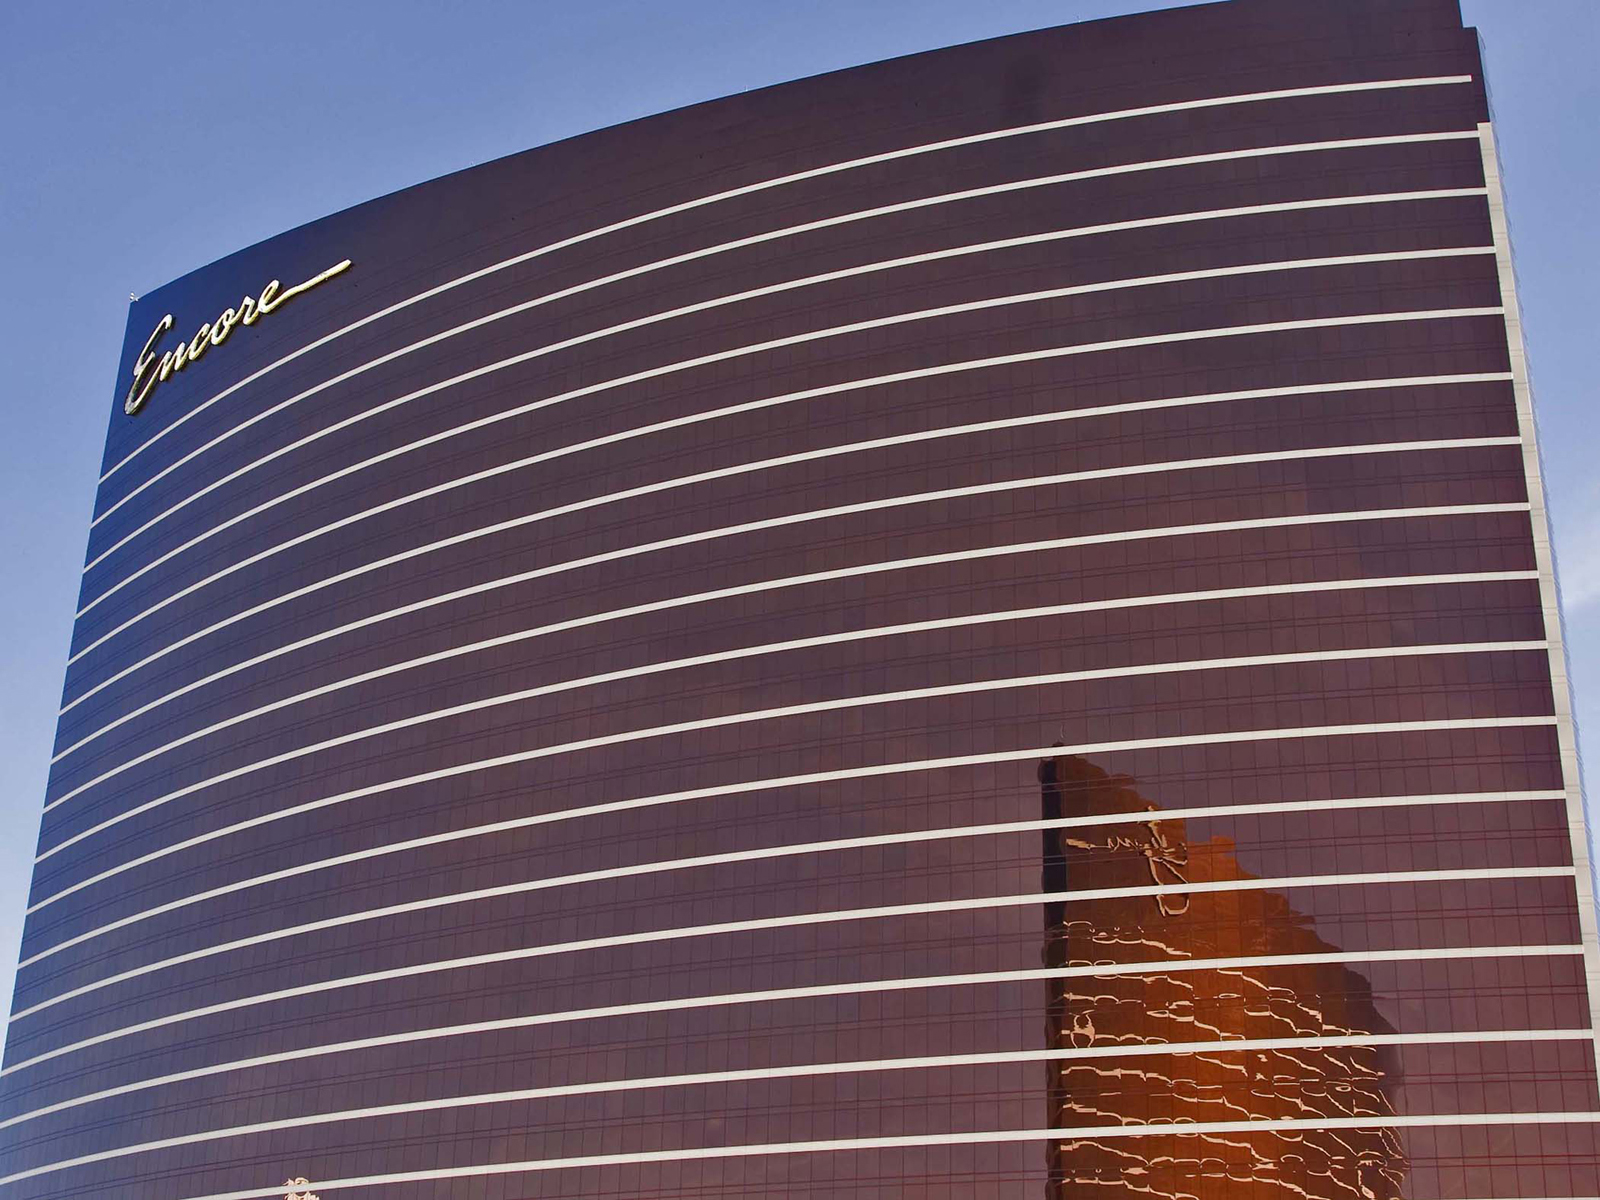 Encore and the Wynn